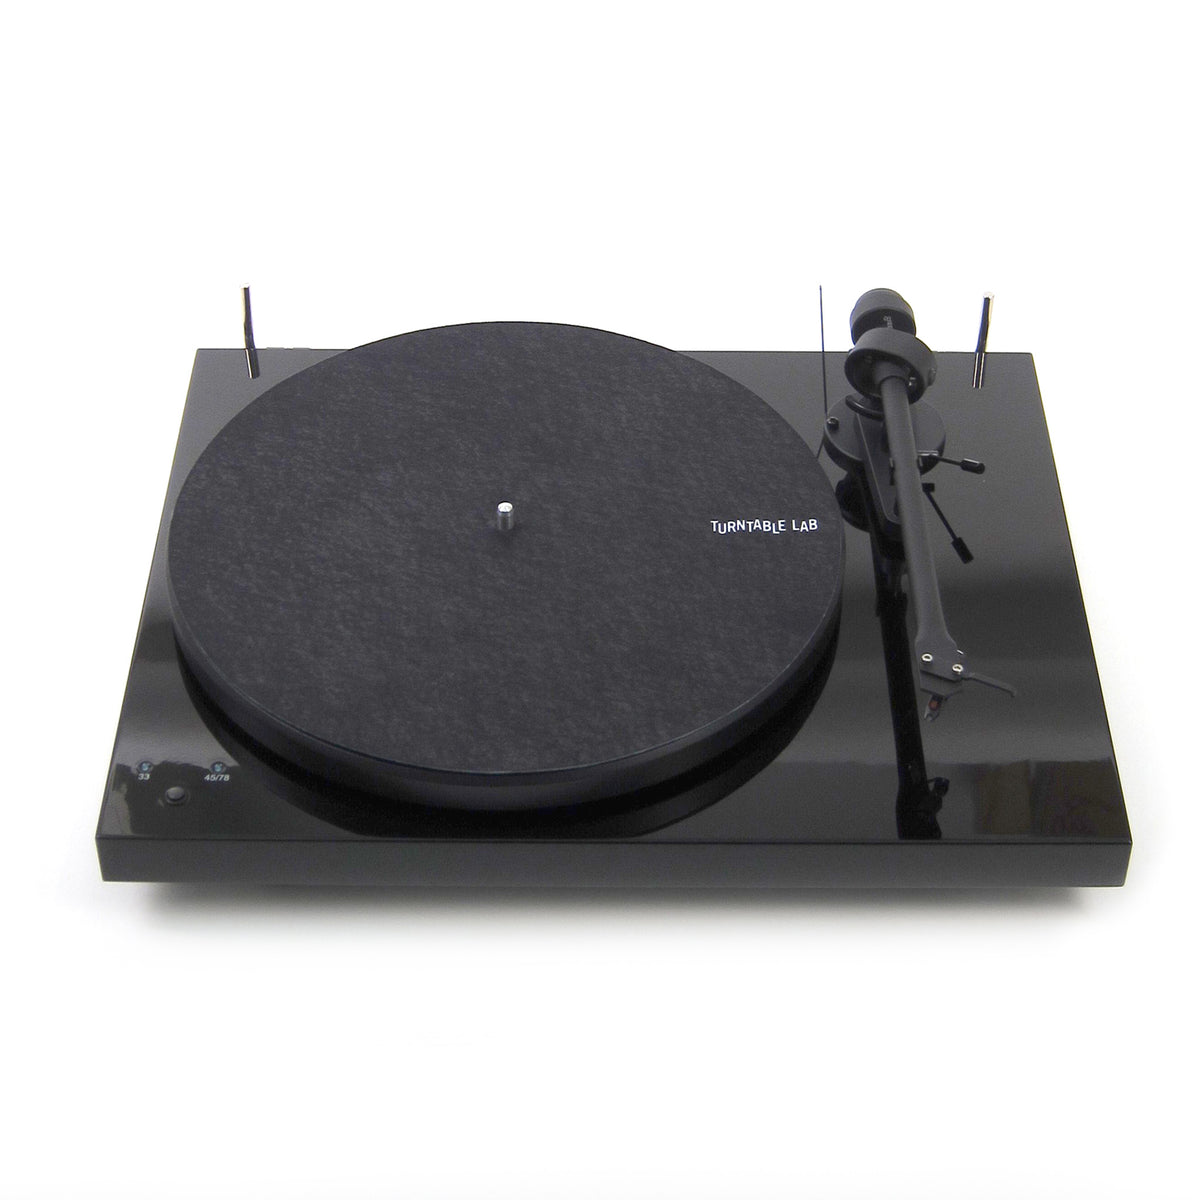 Pro-Ject: Debut III RecordMaster USB Turntable (OM5e) - Black